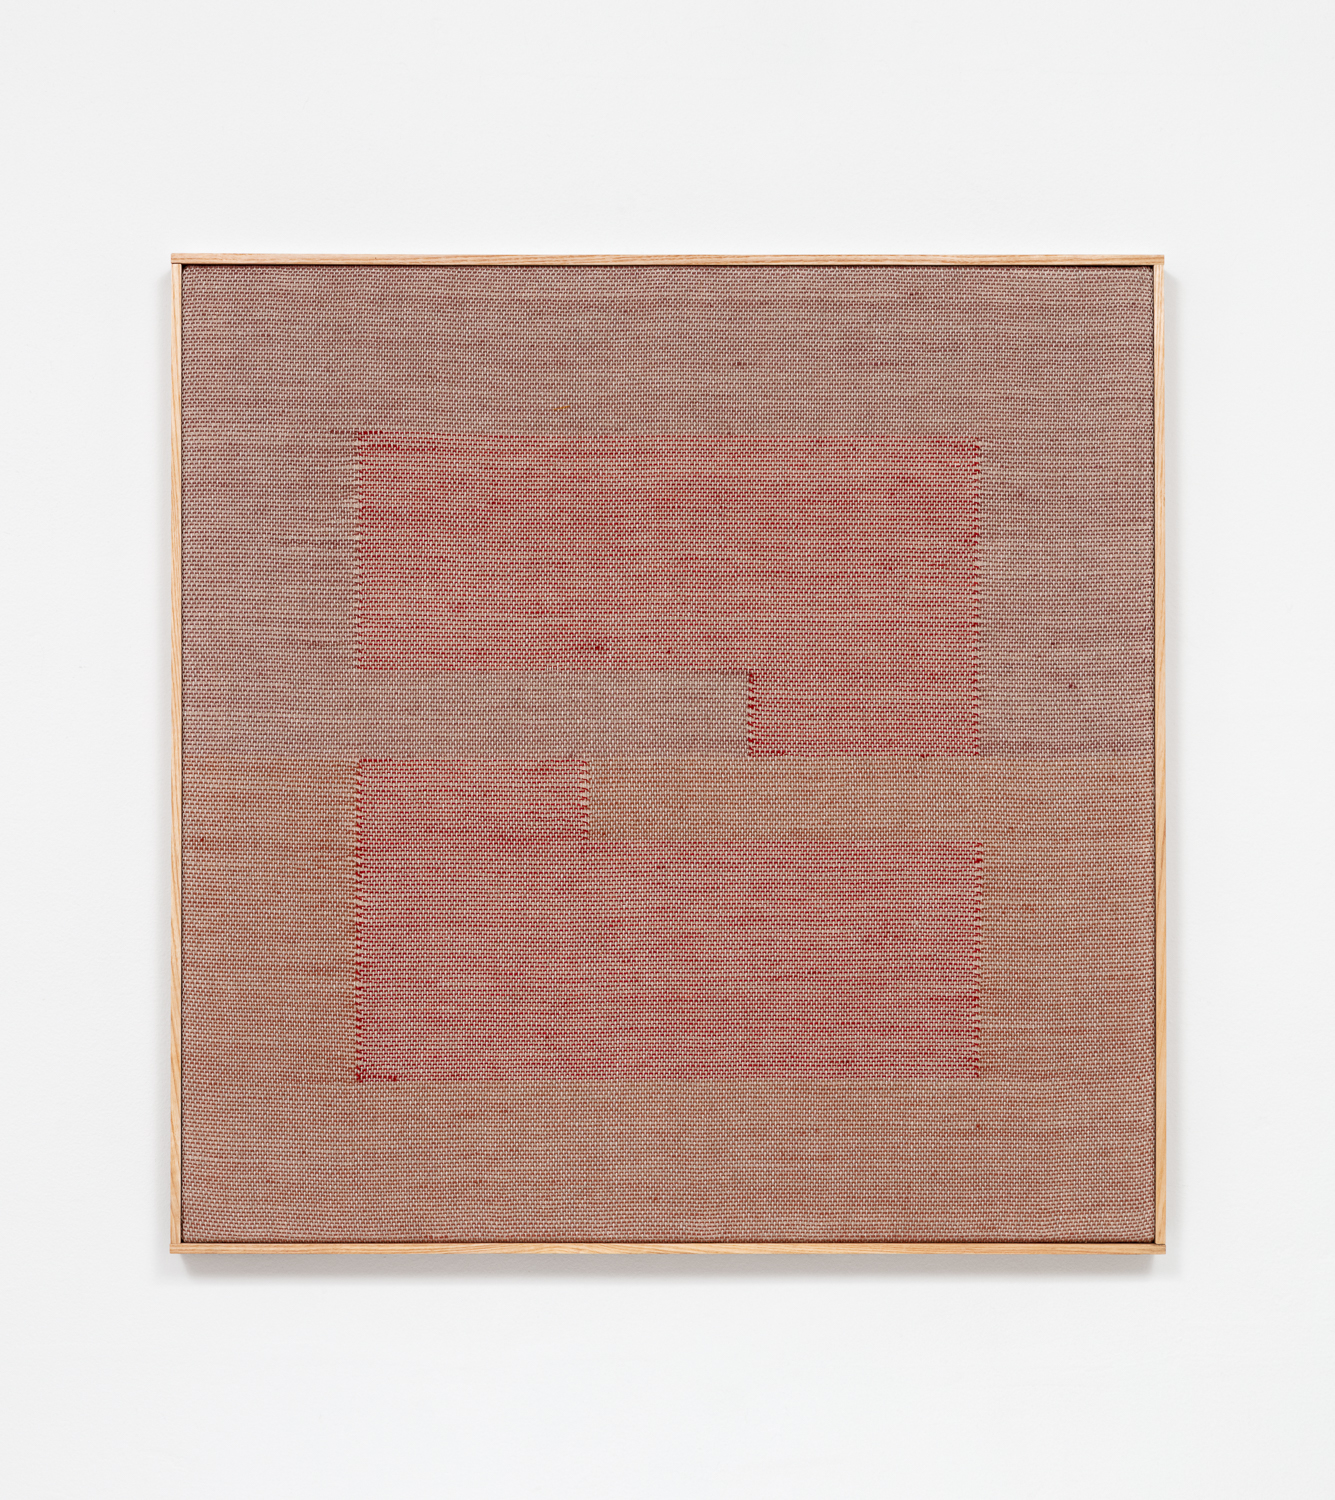 Untitled (Madder and Lac)